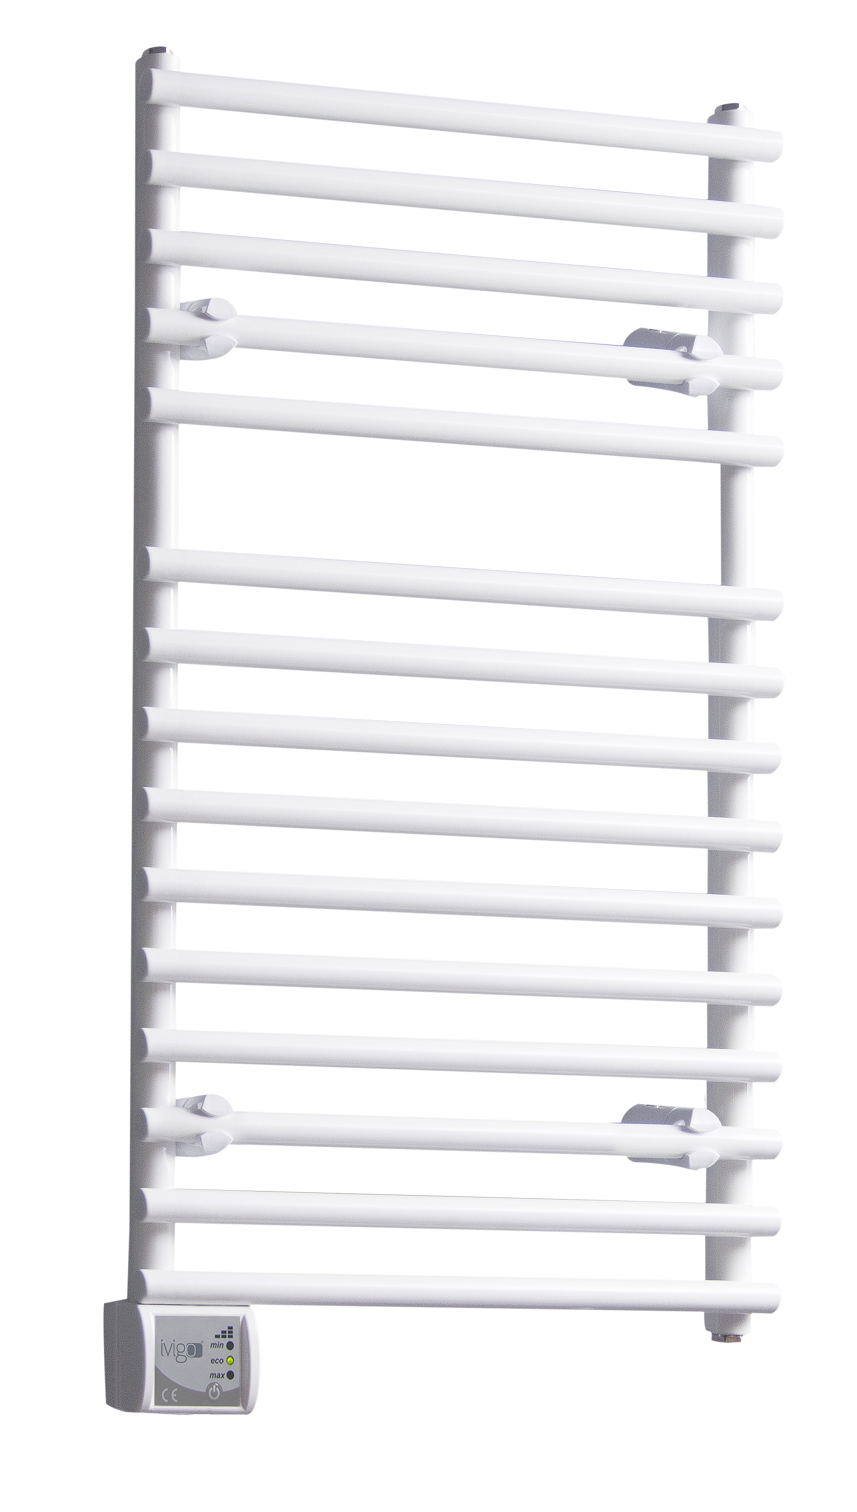 Radiator (calorifer) baie portprosop electric iVigo EHR 5012, 275 W, 500x650 mm, alb fornello imagine